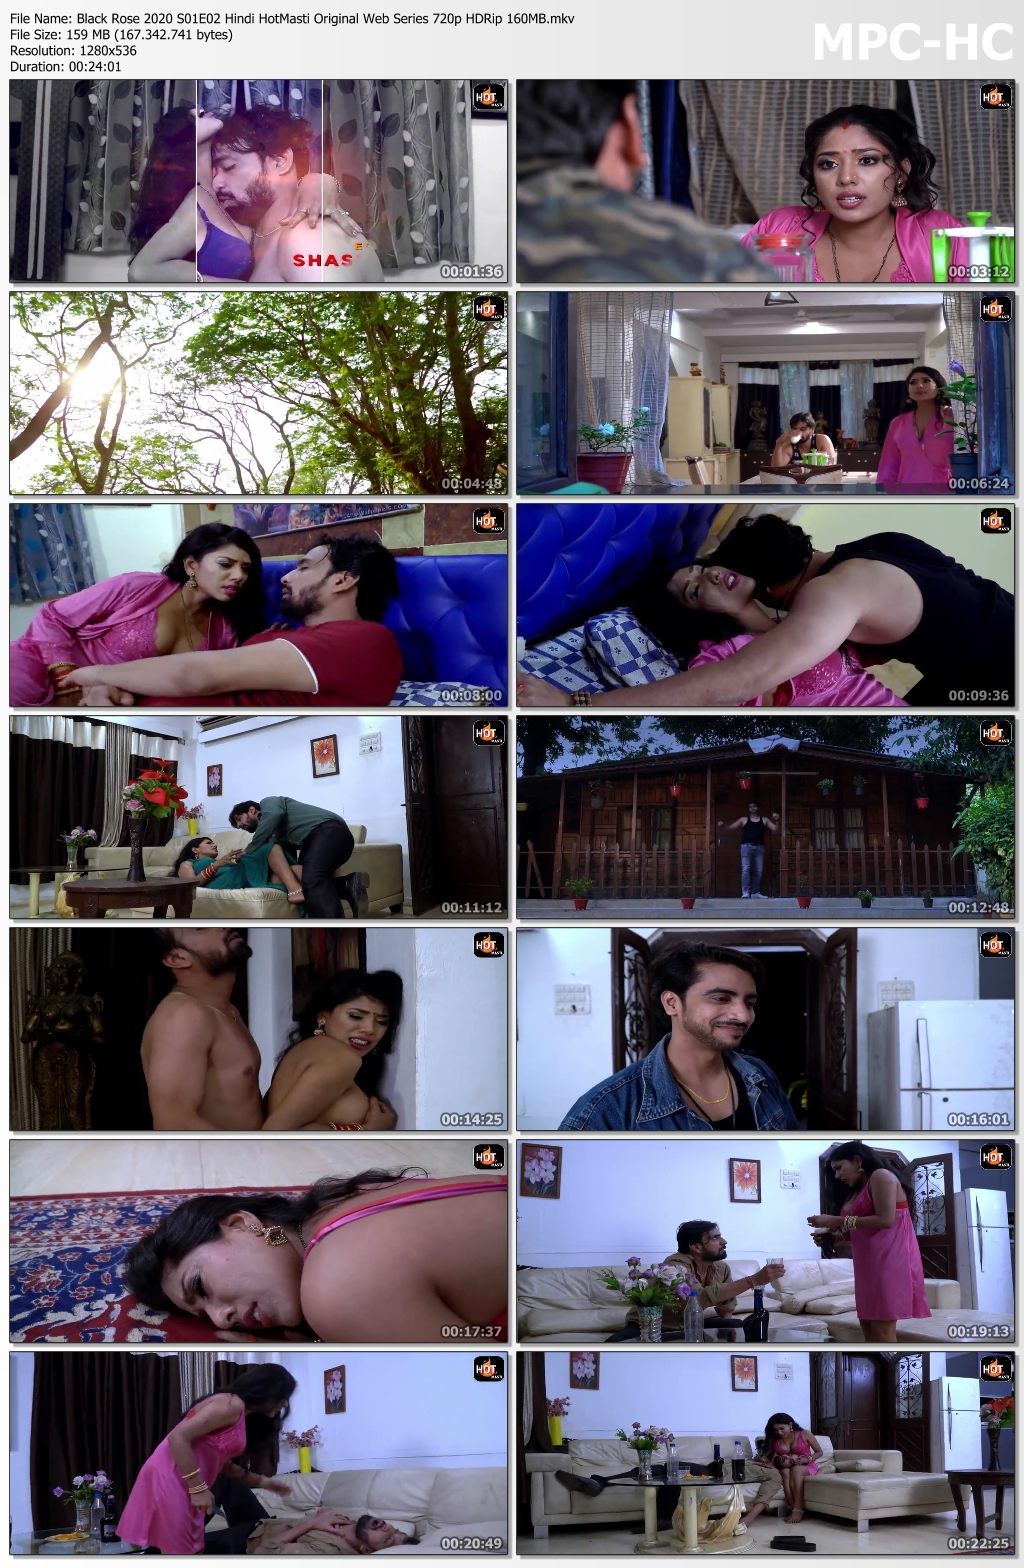 Black-Rose-2020-S01-E02-Hindi-Hot-Masti-Original-Web-Series-720p-HDRip-160-MB-mkv-thumbs